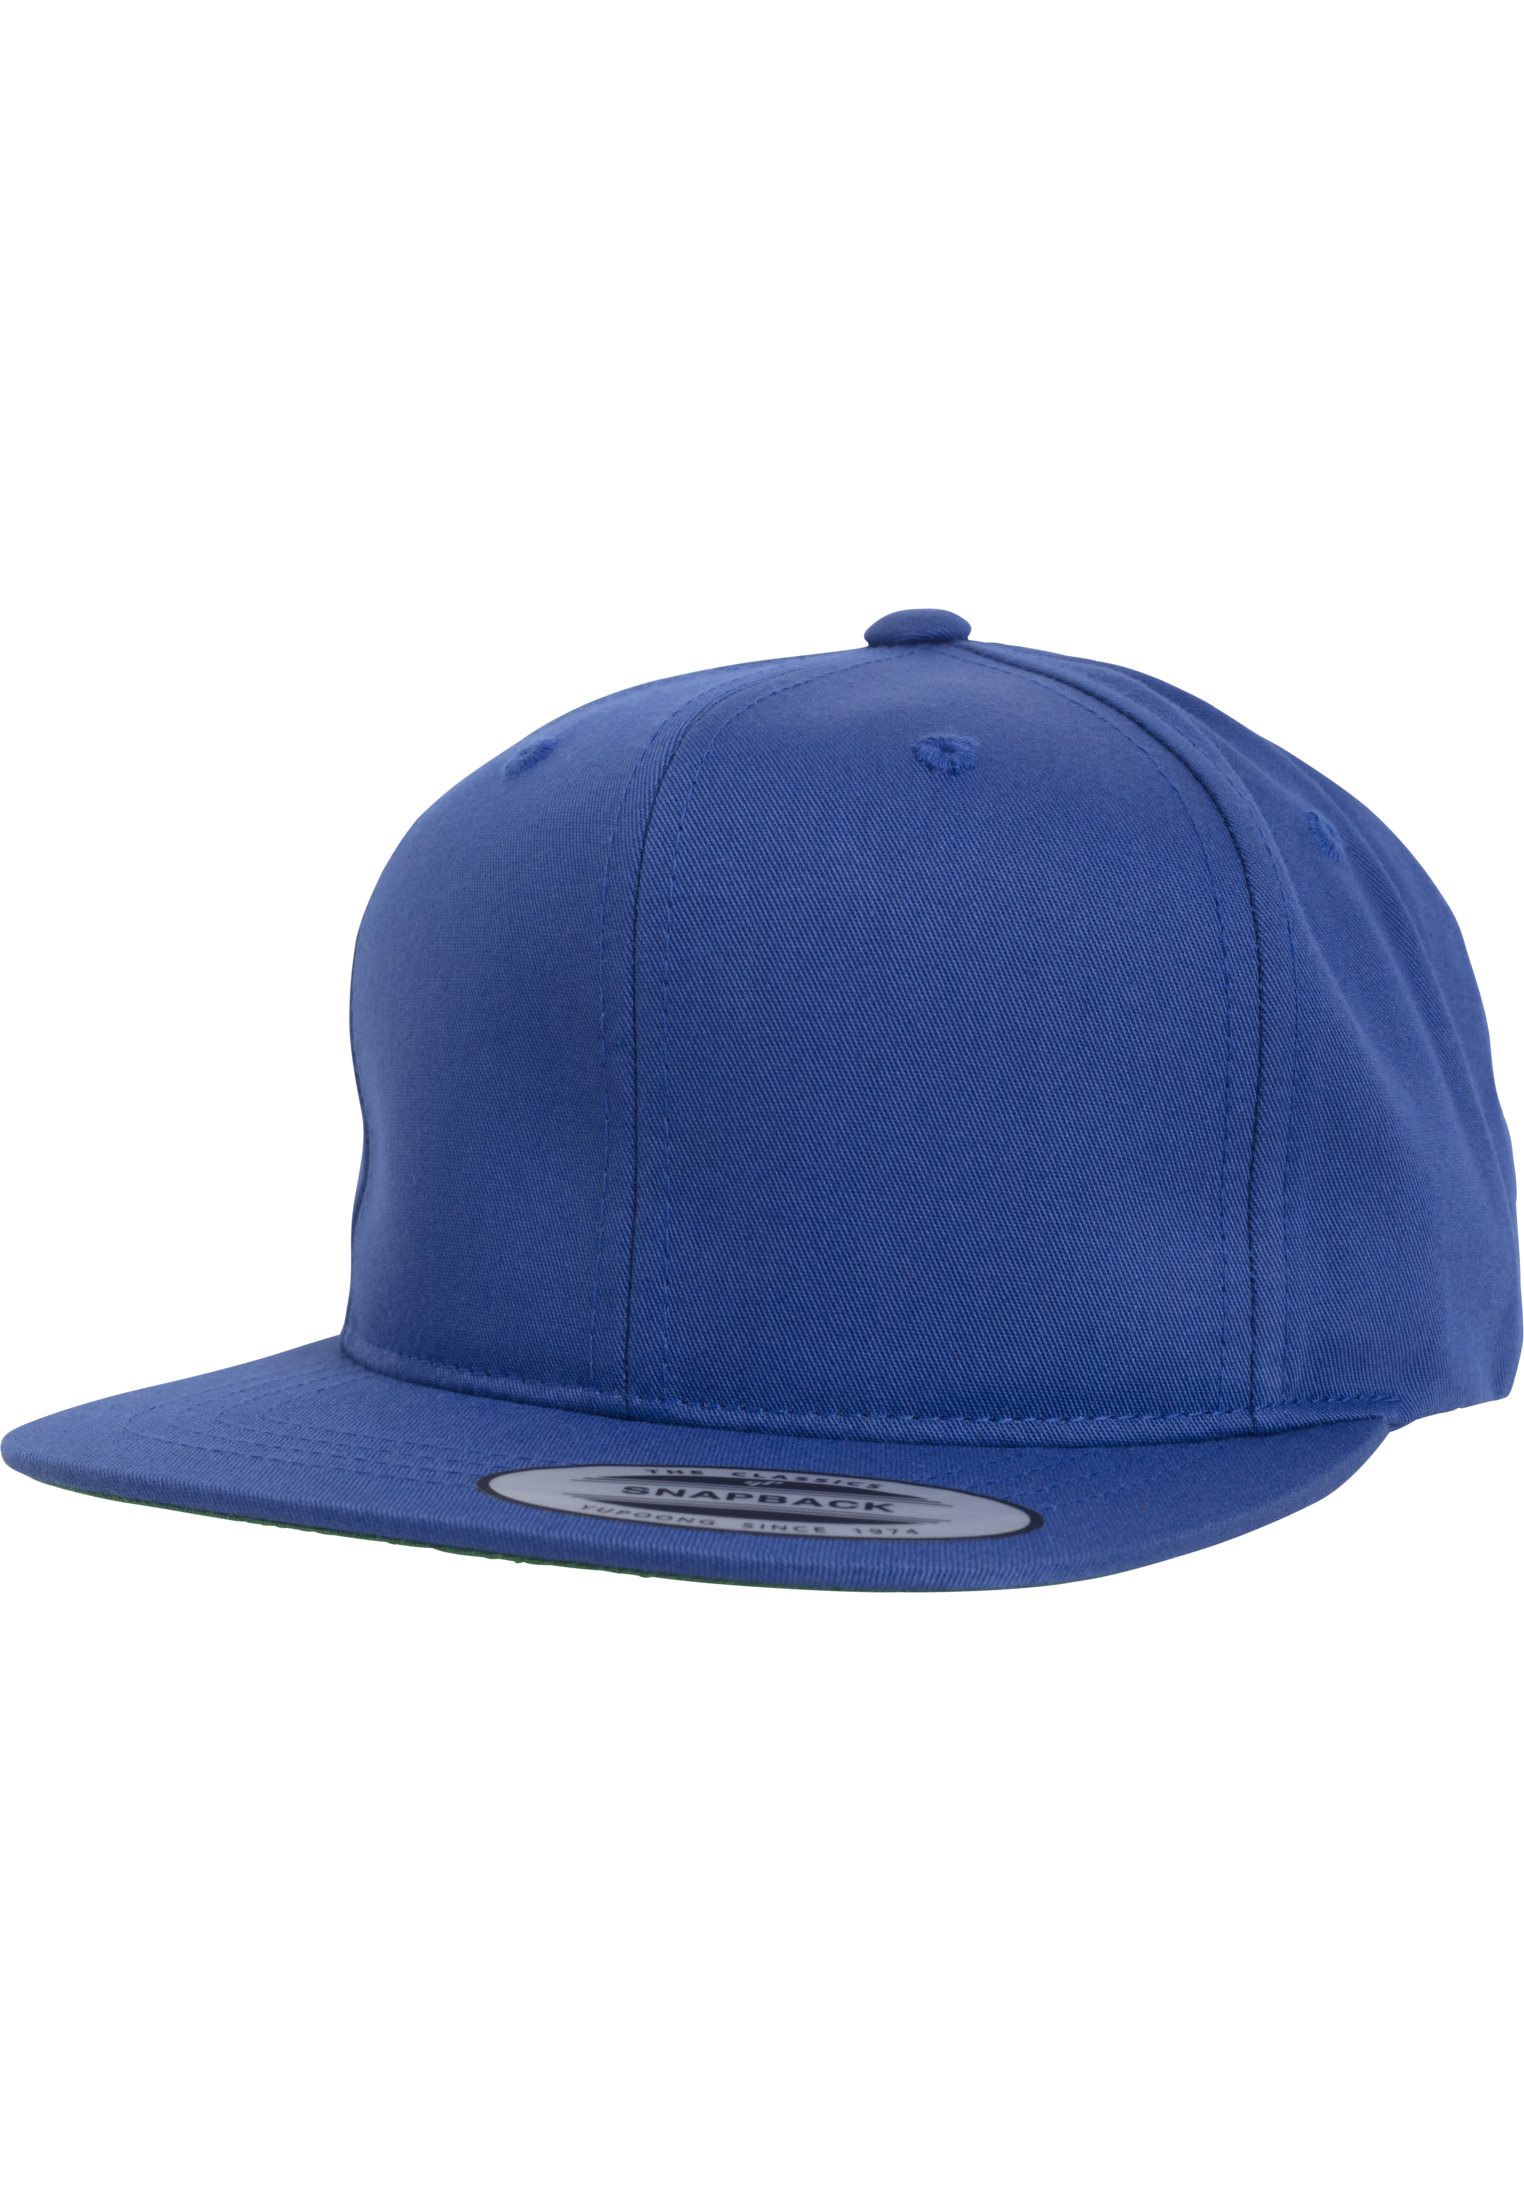 Urban Classic Pro-Style Twill Snapback Youth Cap royal - B (Ages 6-14)